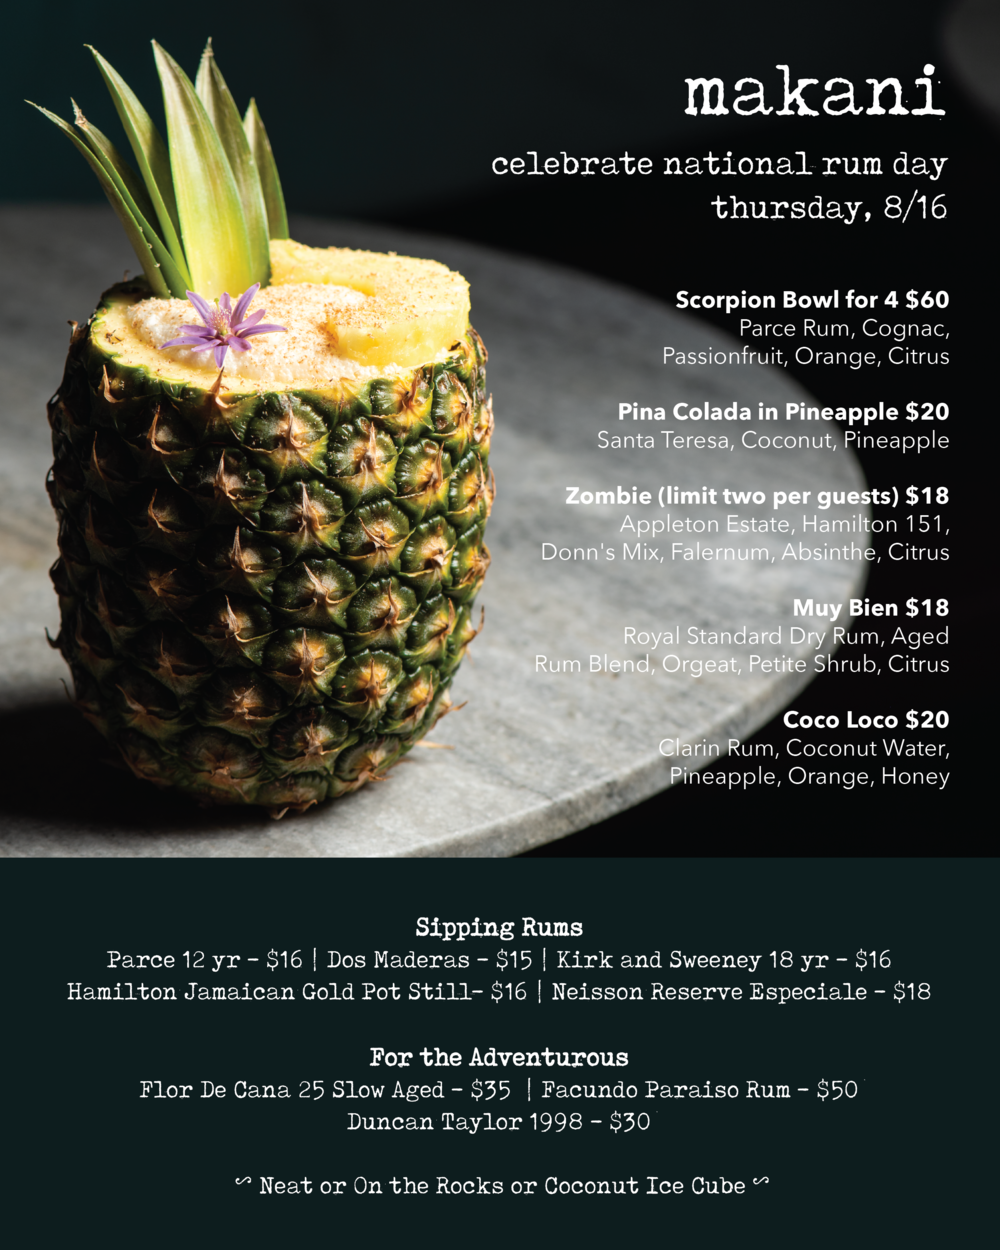 National Rum Day!Thursday, August 16th - In addition to our current rum-centric cocktail offering, for National Rum Day we will have a few extra specials:Scorpion Bowl for 4 $60 | Parce Rum, Cognac, Passionfruit, Orange, CitrusPina Colada in Pineapple $20 | Santa Teresa, Coconut,Pineapple Zombie (limit two per guests) $18 | Appleton Estate, Hamilton 151, Donn's Mix, Falernum, Absinthe, CitrusMuy Bien $18 | Royal Standard Dry Rum, Aged Rum Blend, Orgeat, Petite Shrub, CitrusCoco Loco $20 | Clarin Rum, Coconut Water, Pineapple, Orange, HoneyAs always, we will have a fine selection of rums for sipping!